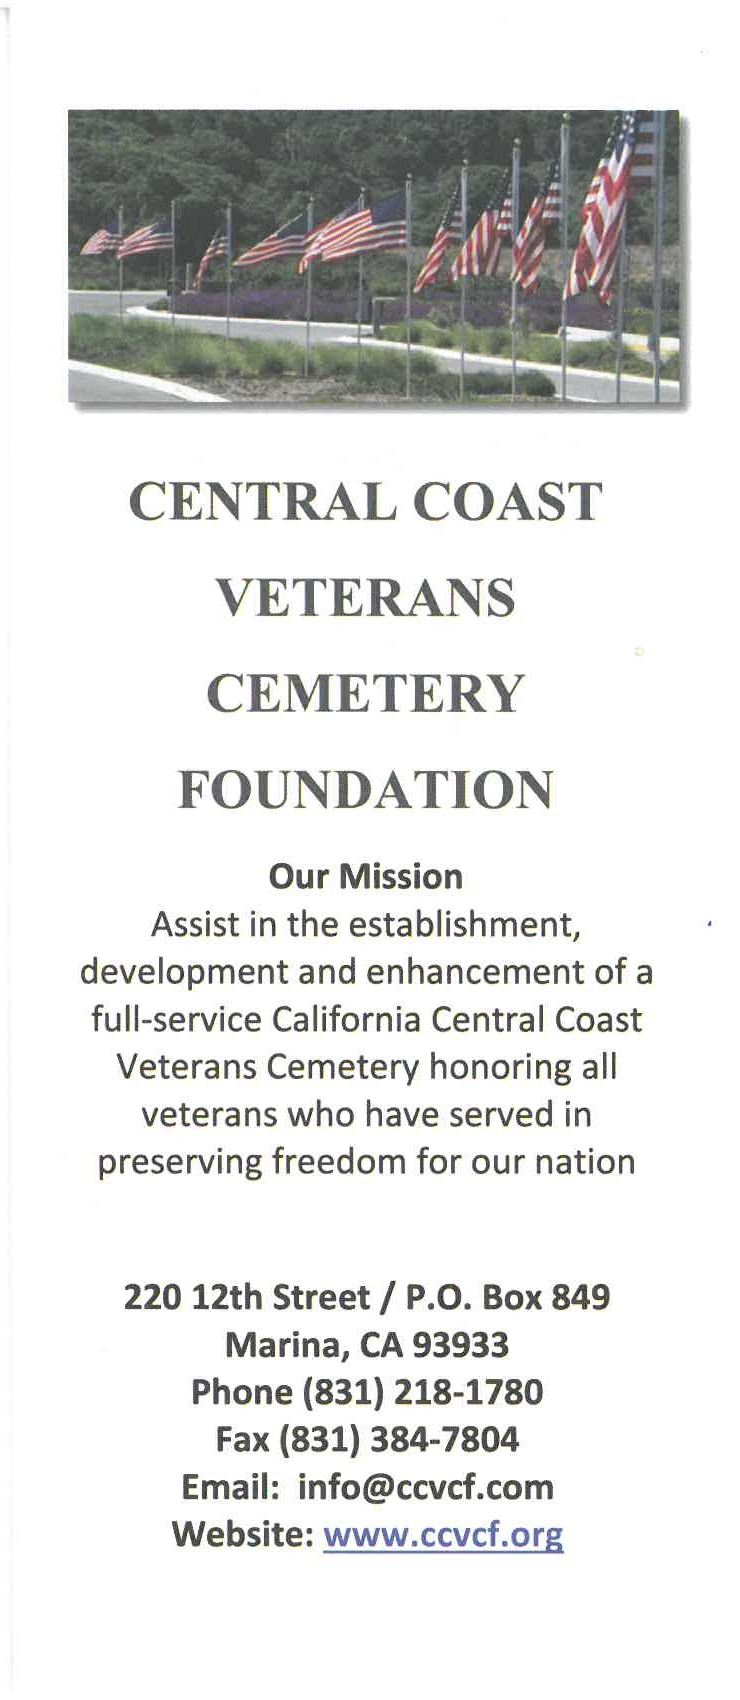 Central Coast Veterans Cemetery Foundation flyer